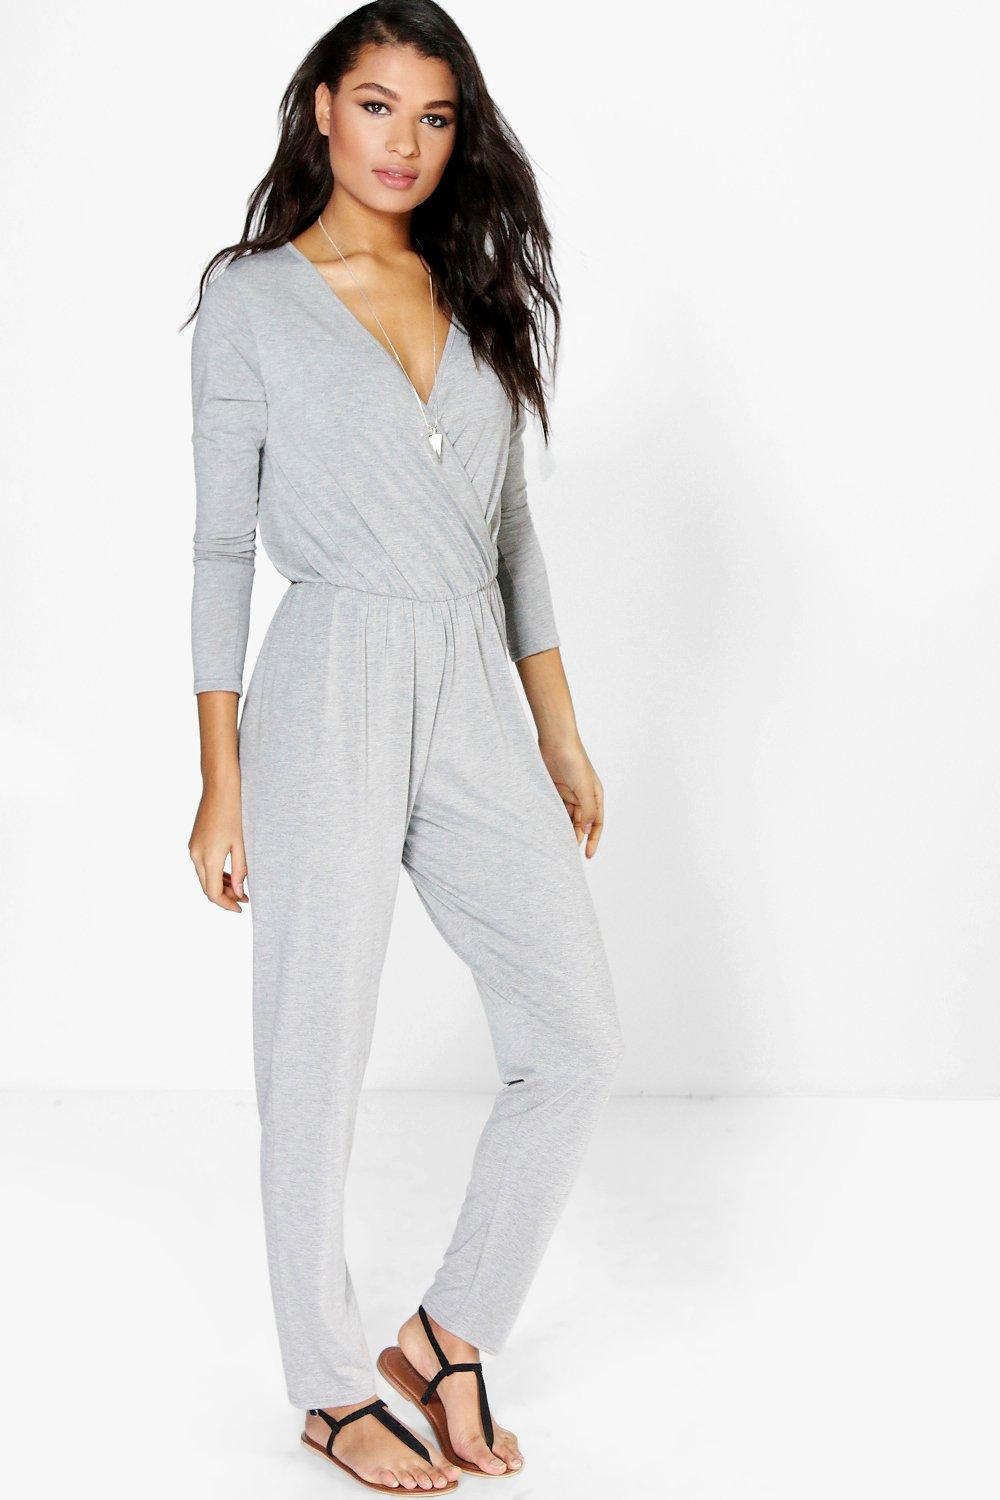 Rompers & Jumpsuits: Free Shipping on orders over $45 at tokosepatu.ga - Your Online Outfits Store! Overstock uses cookies to ensure you get the best experience on our site. If you continue on our site, you consent to the use of such cookies. Womens Rompers Jumpsuit Casual Solid Bodysuit Sleeveless Crew Neck Long Playsuits.